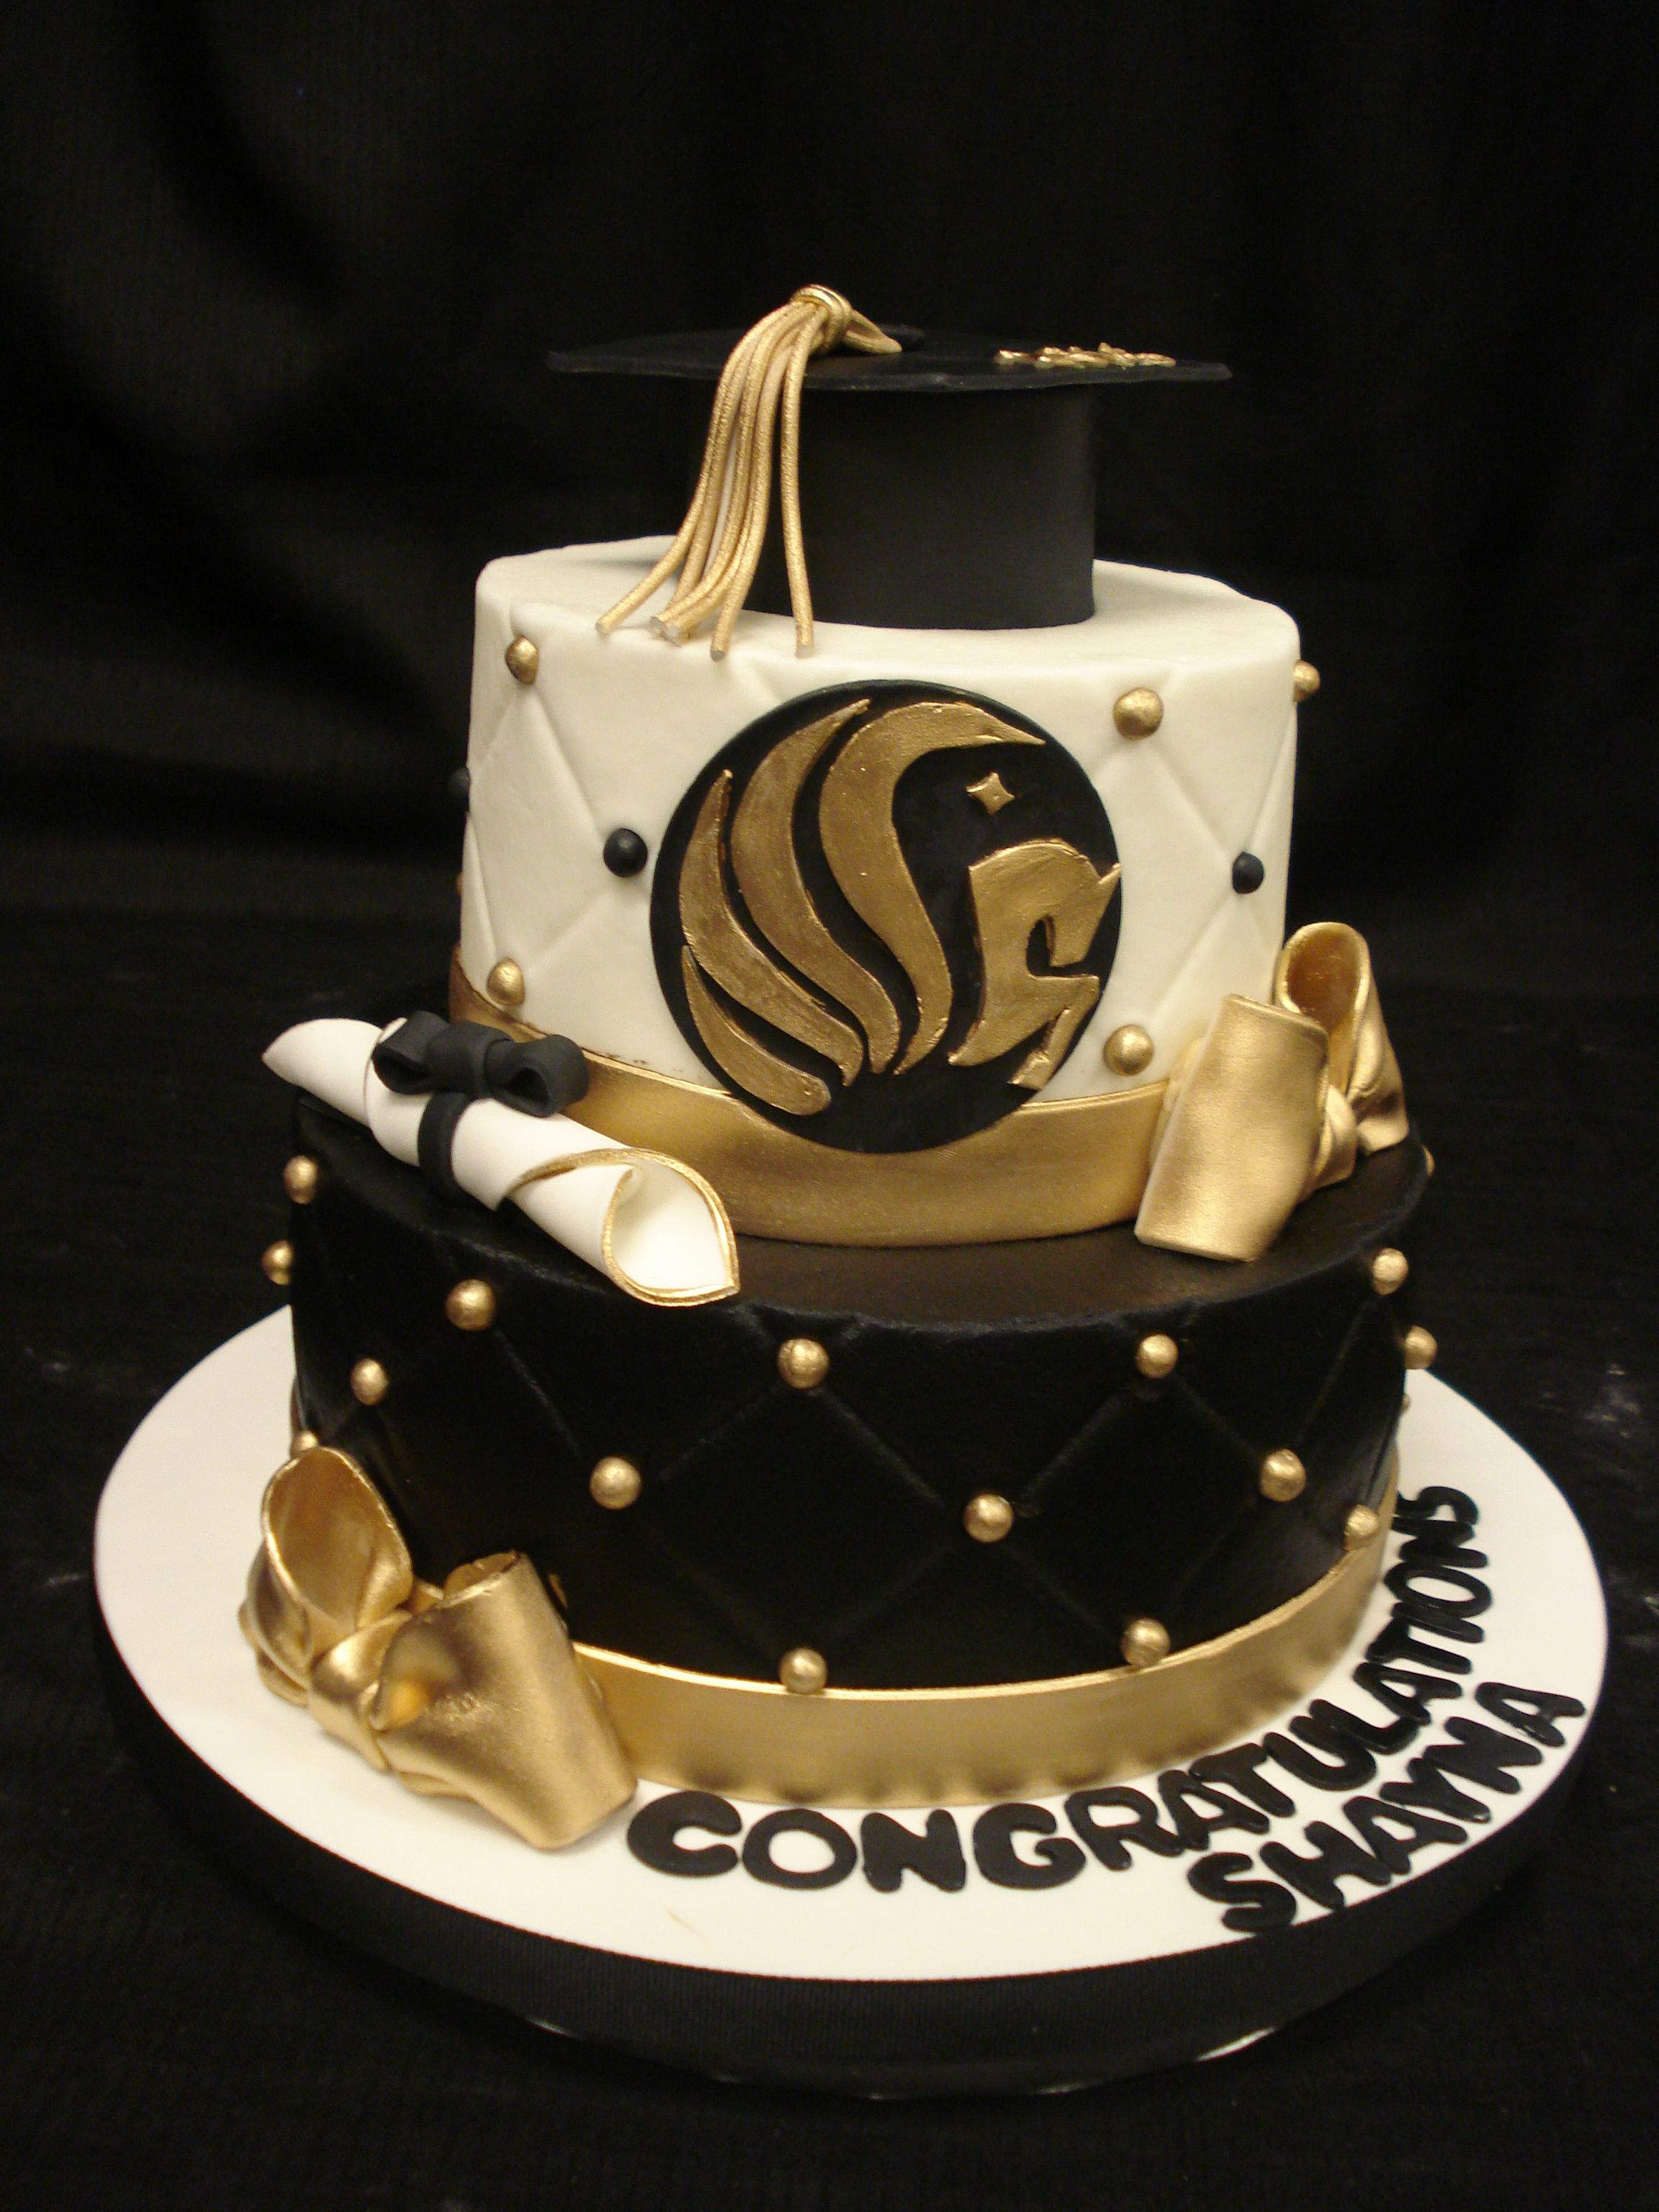 Ucf Graduation Quilted Cake With Black Buttercream And